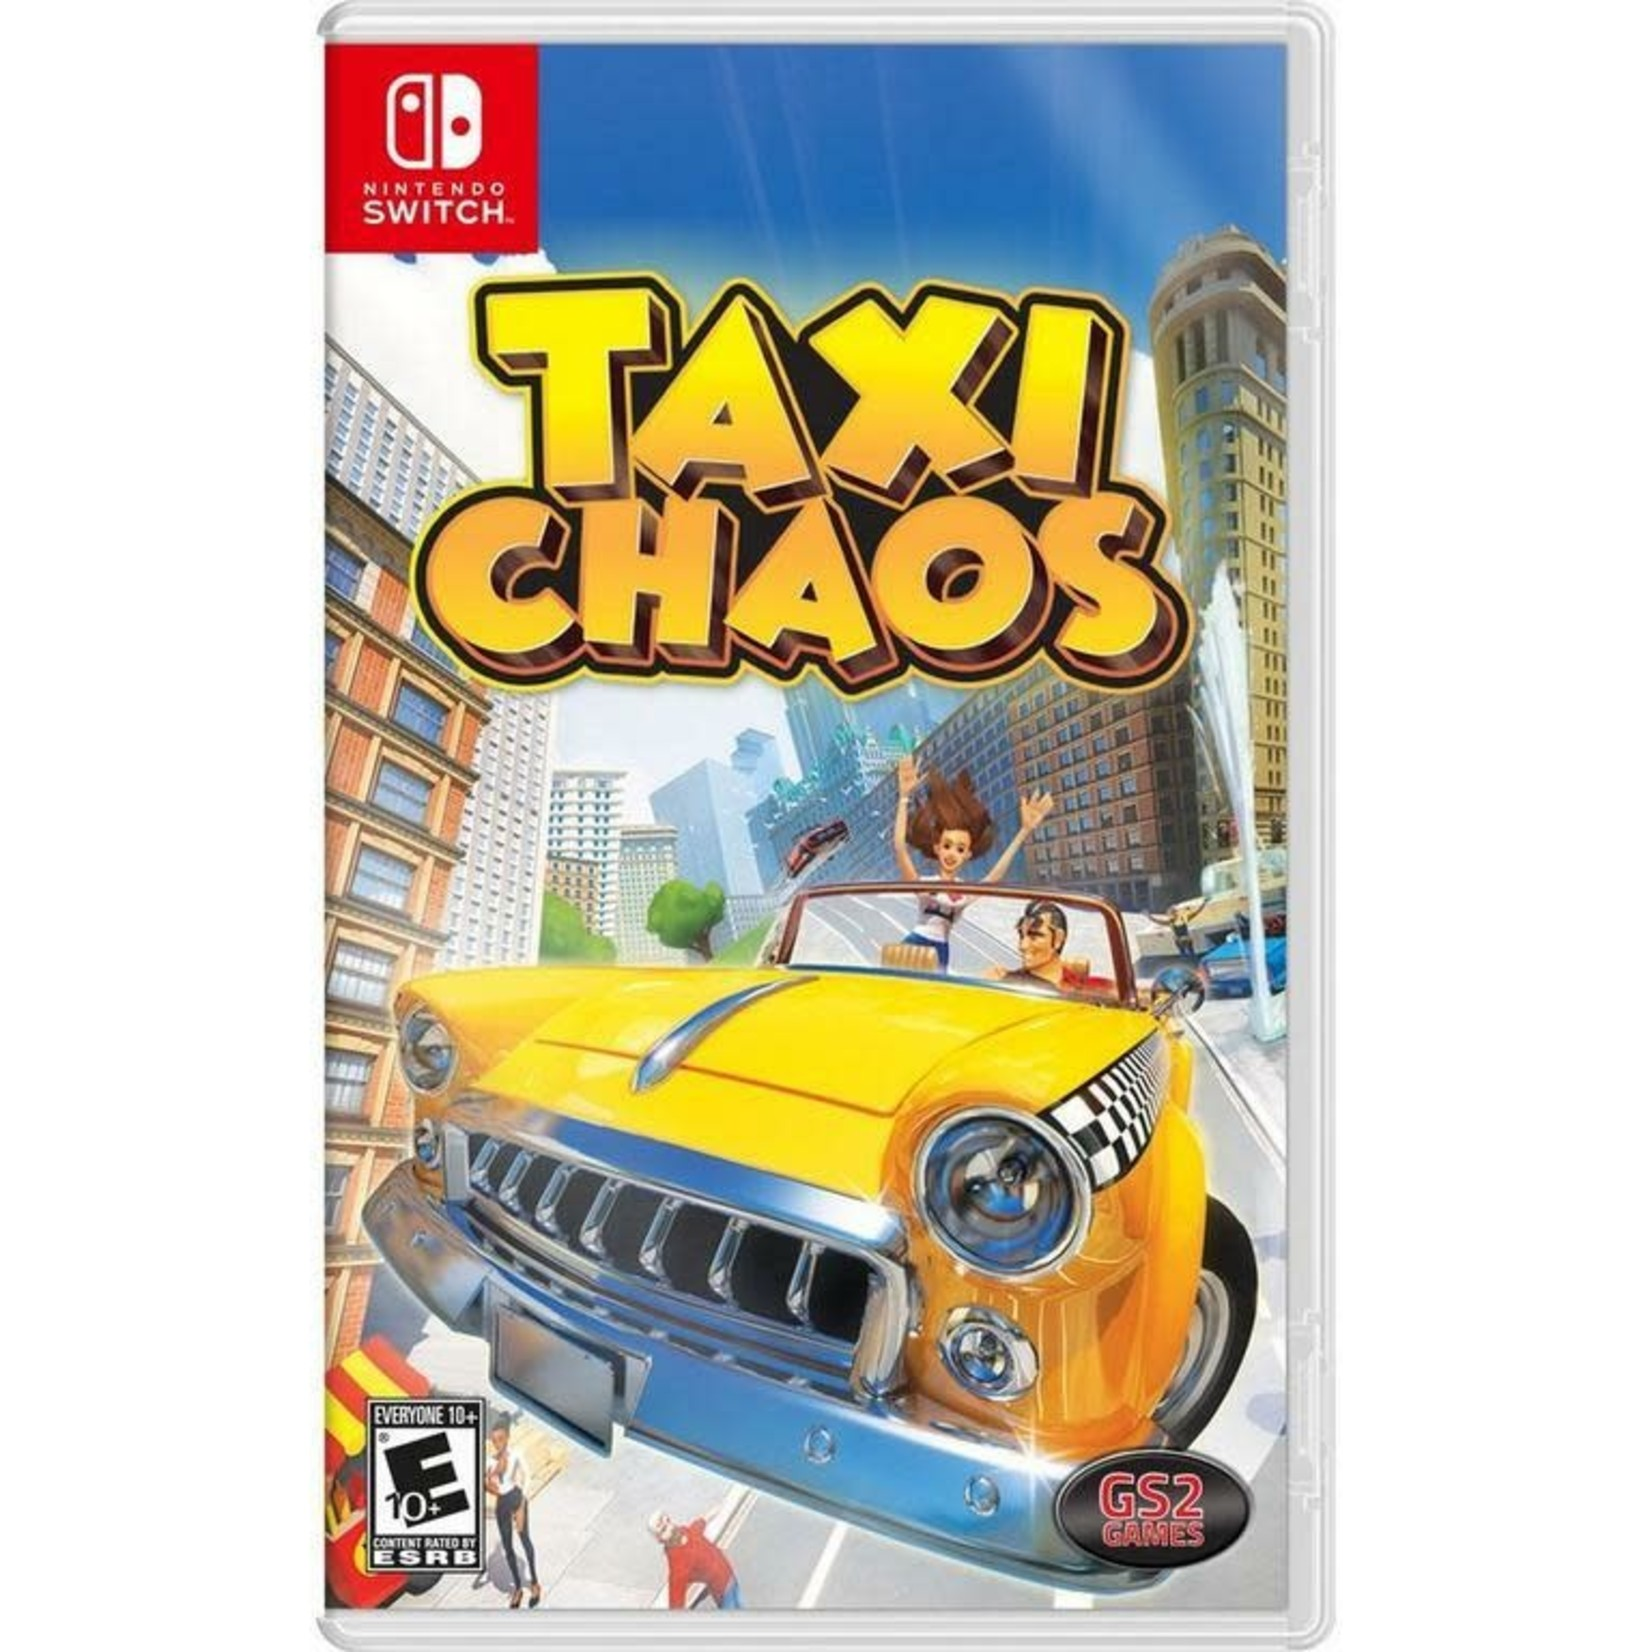 SWITCH-Taxi Chaos